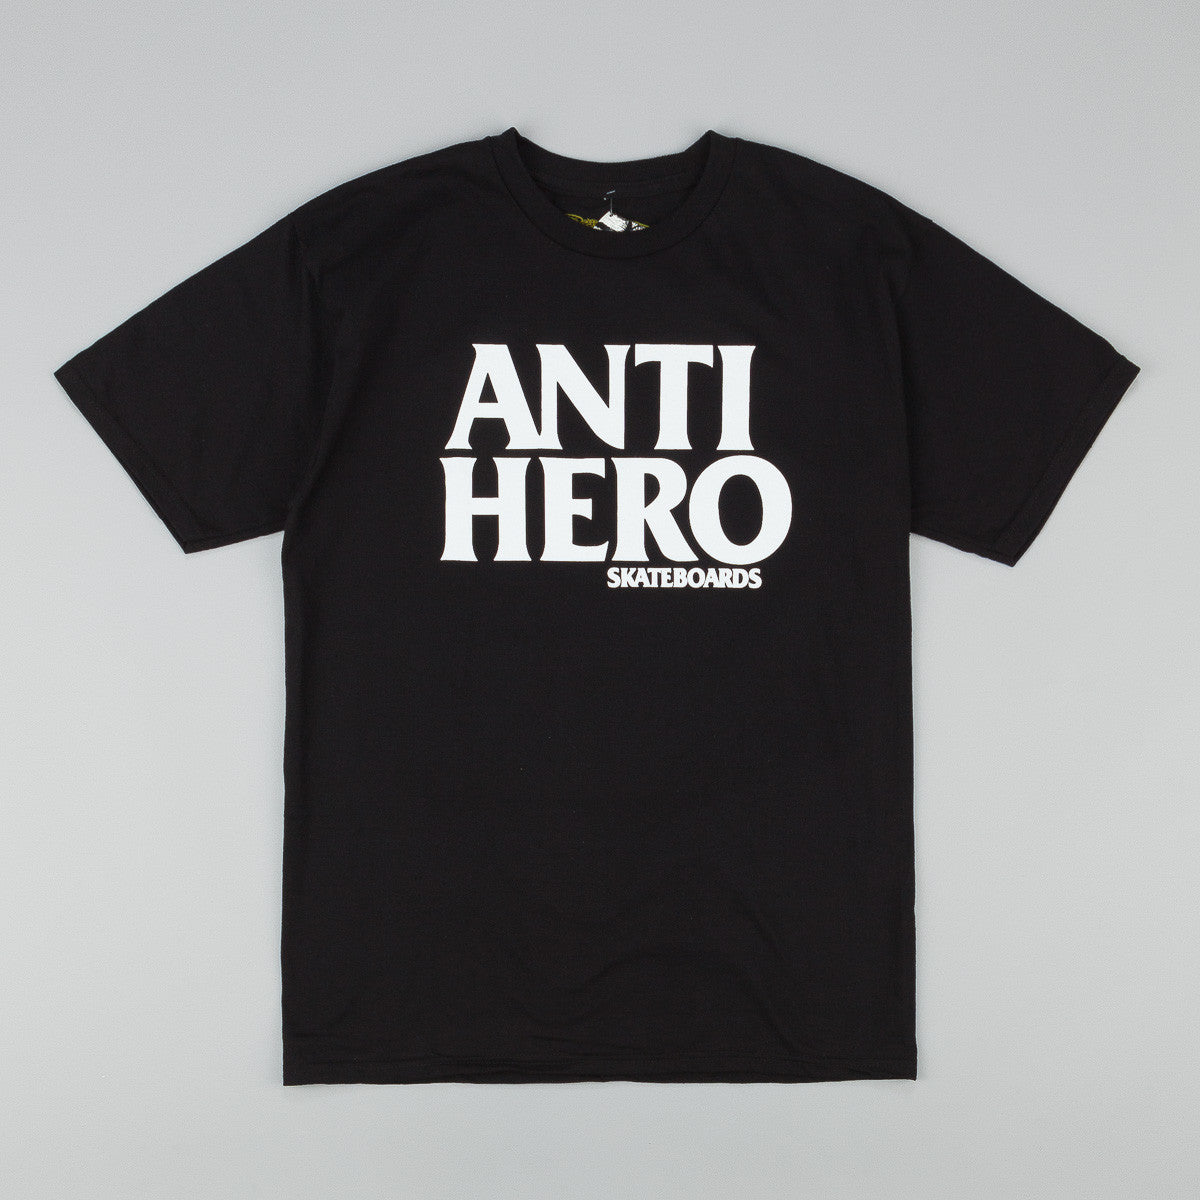 Anti Hero Black Hero T-Shirt - Black / White